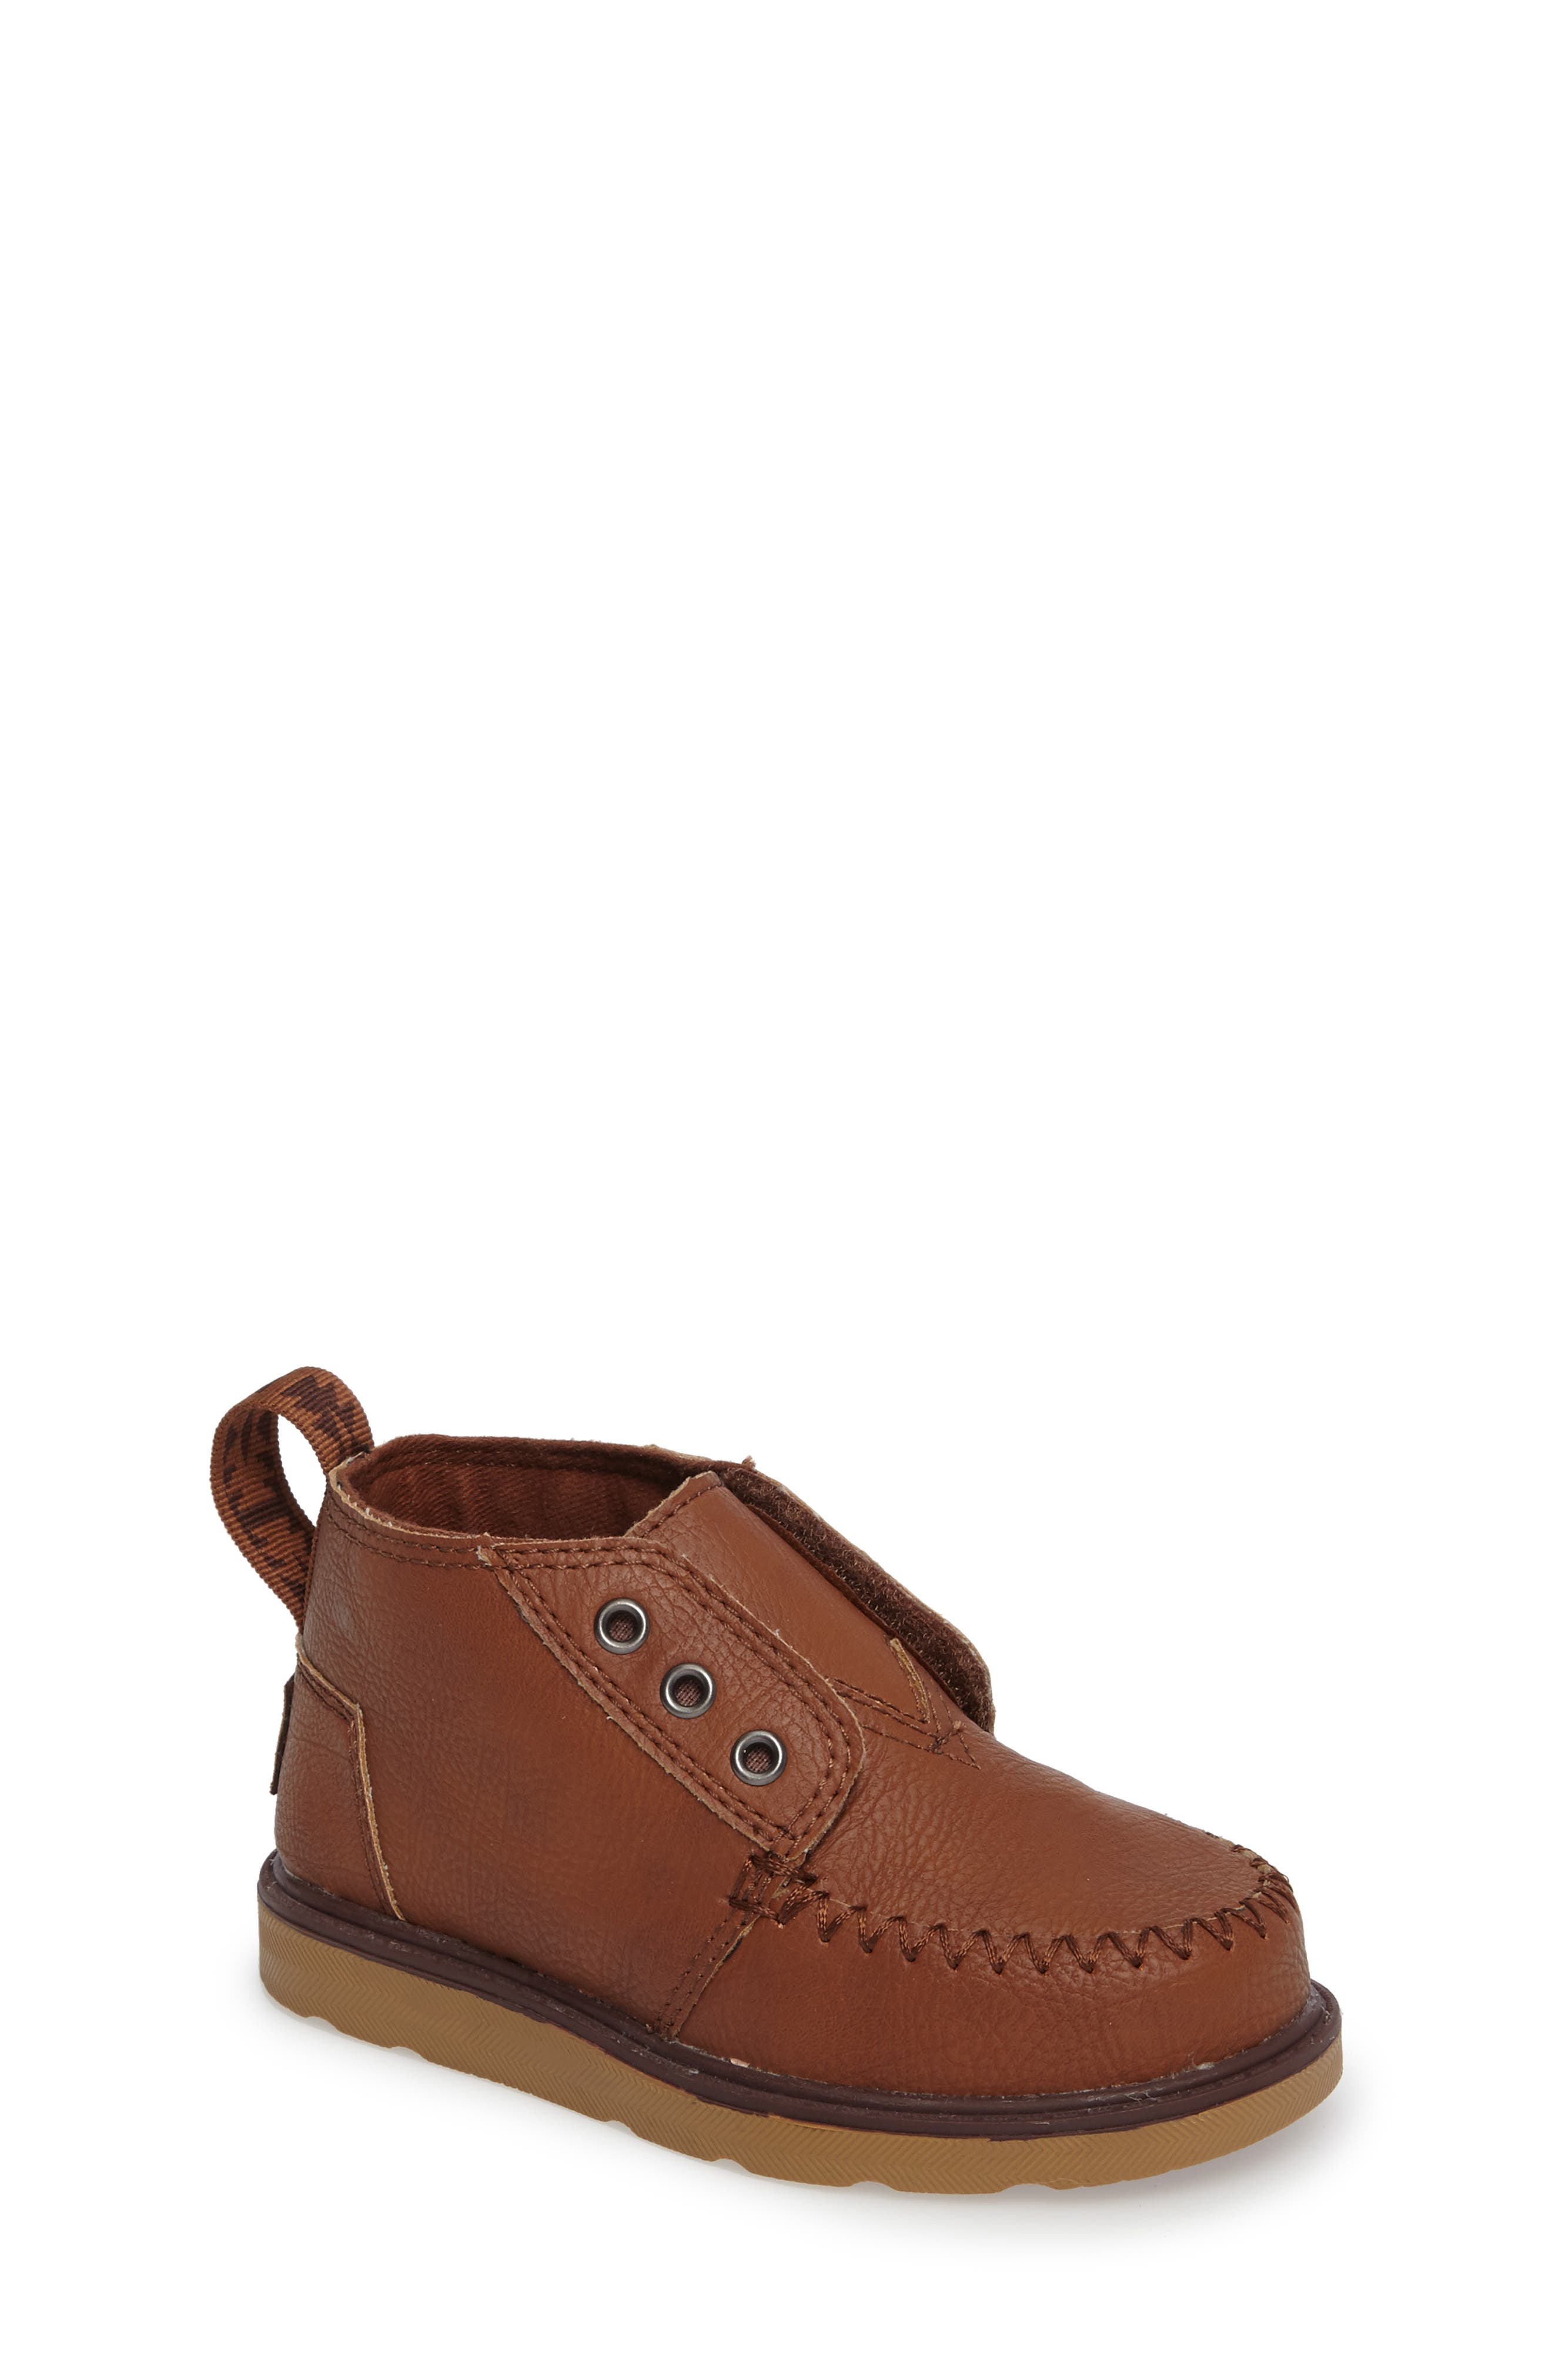 TOMS Chukka Boot (Baby, Walker & Toddler)